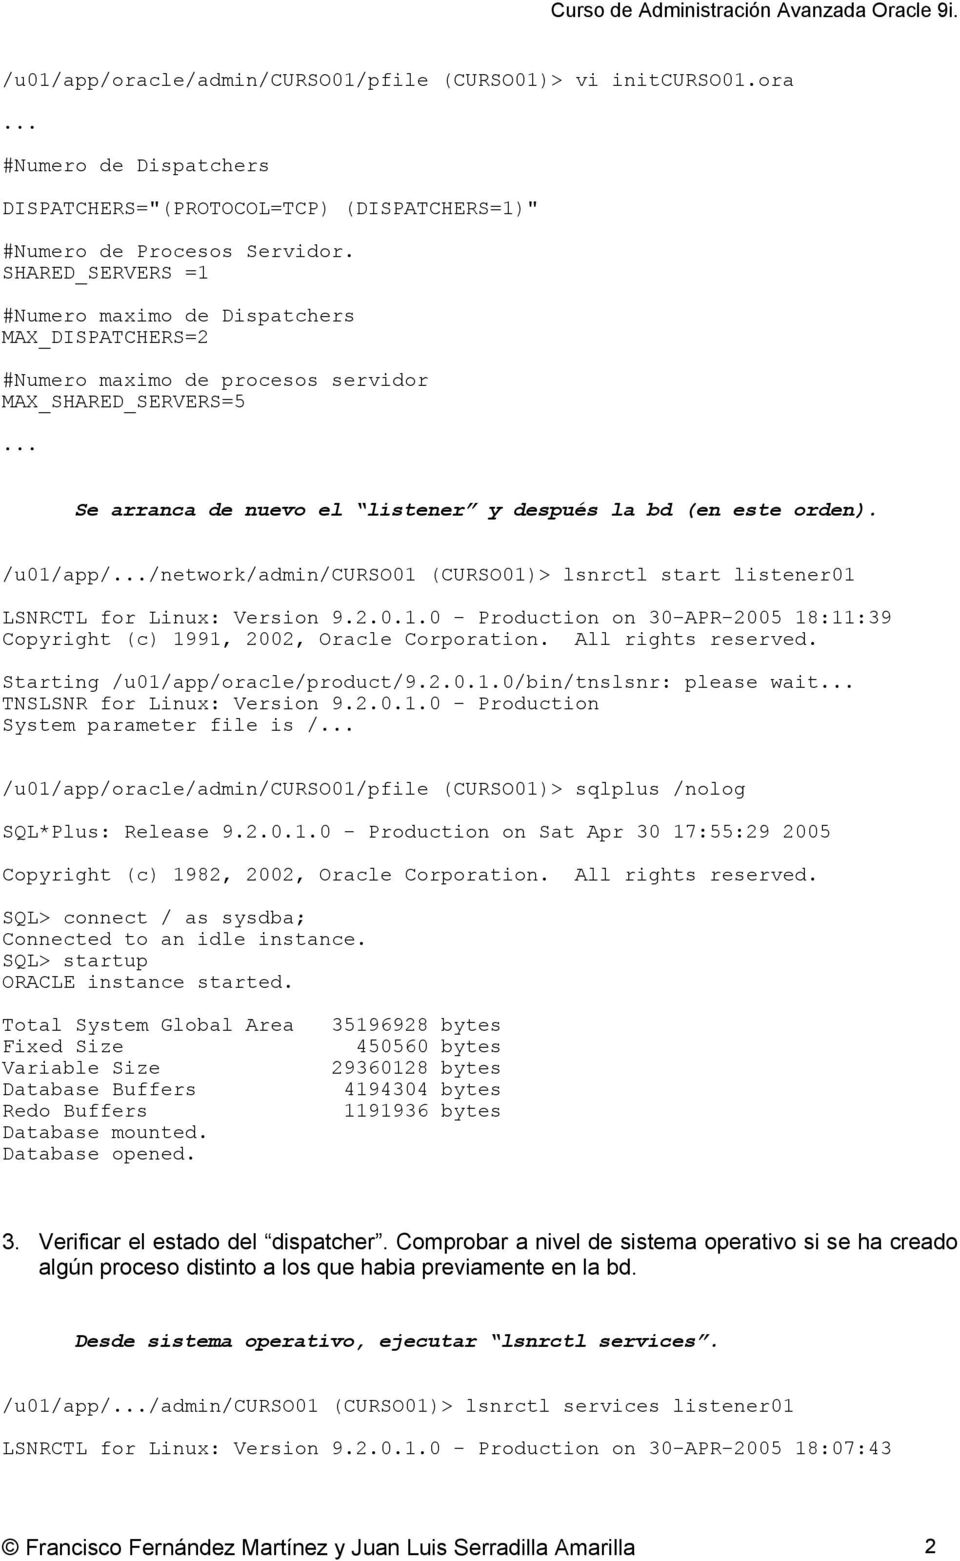 /u01/app/.../network/admin/curso01 (CURSO01)> lsnrctl start listener01 LSNRCTL for Linux: Version 9.2.0.1.0 - Production on 30-APR-2005 18:11:39 Copyright (c) 1991, 2002, Oracle Corporation.